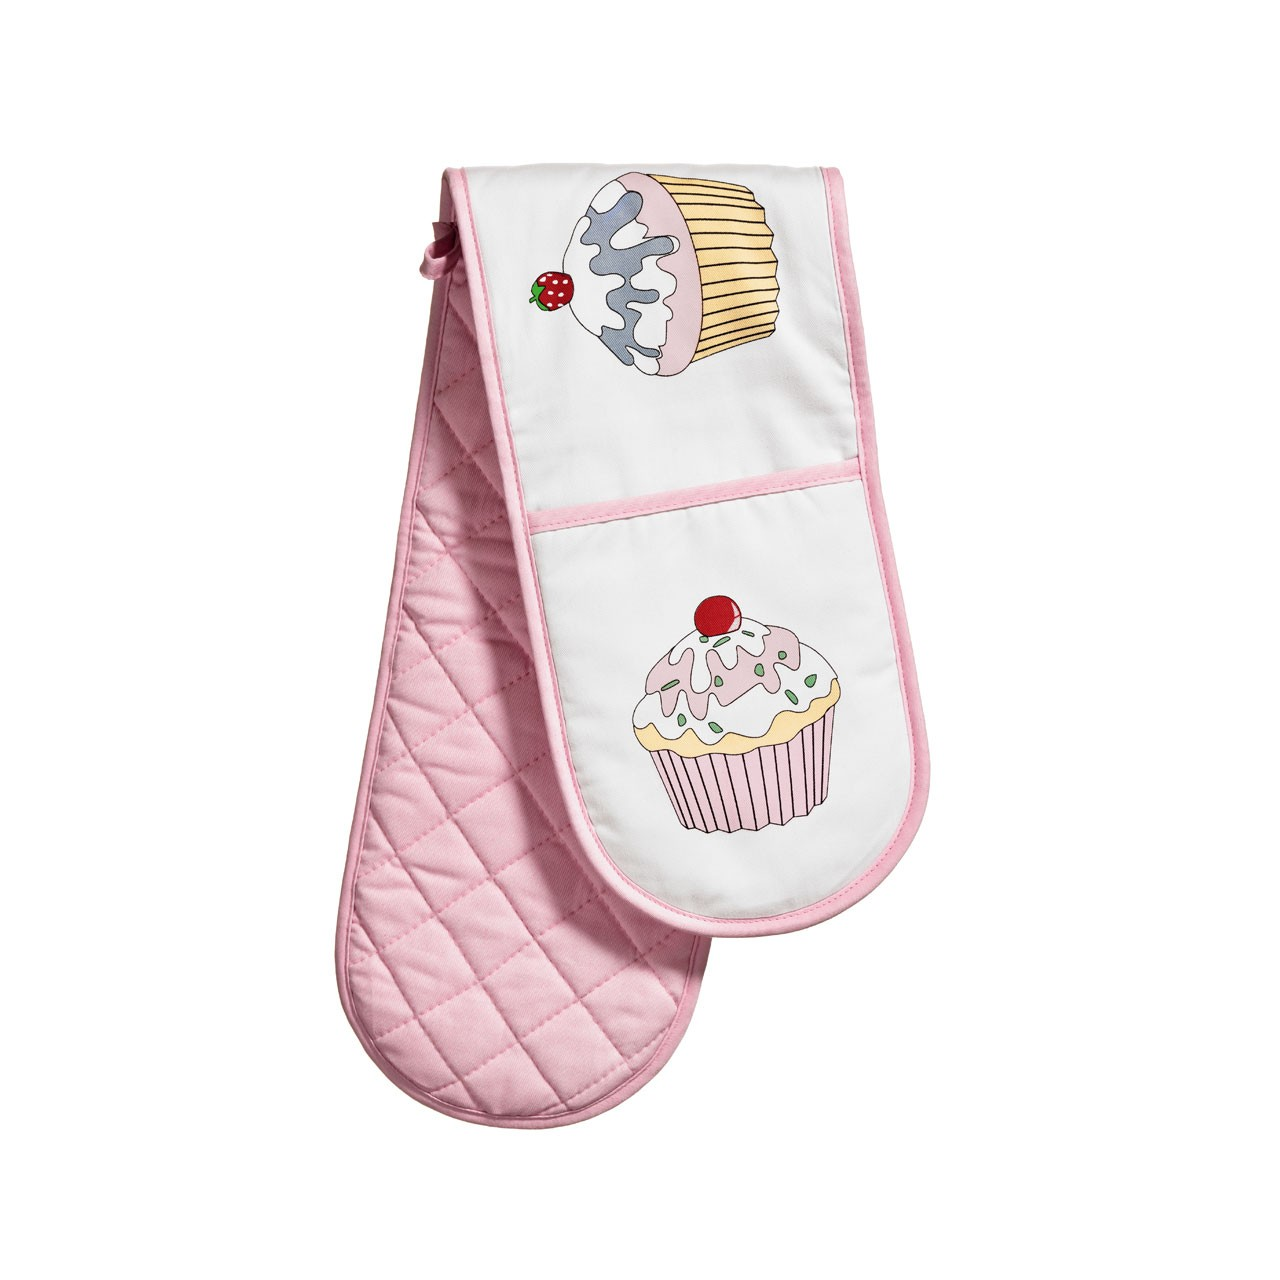 Prime Furnishing Cupcake Double Oven Glove 100% Cotton